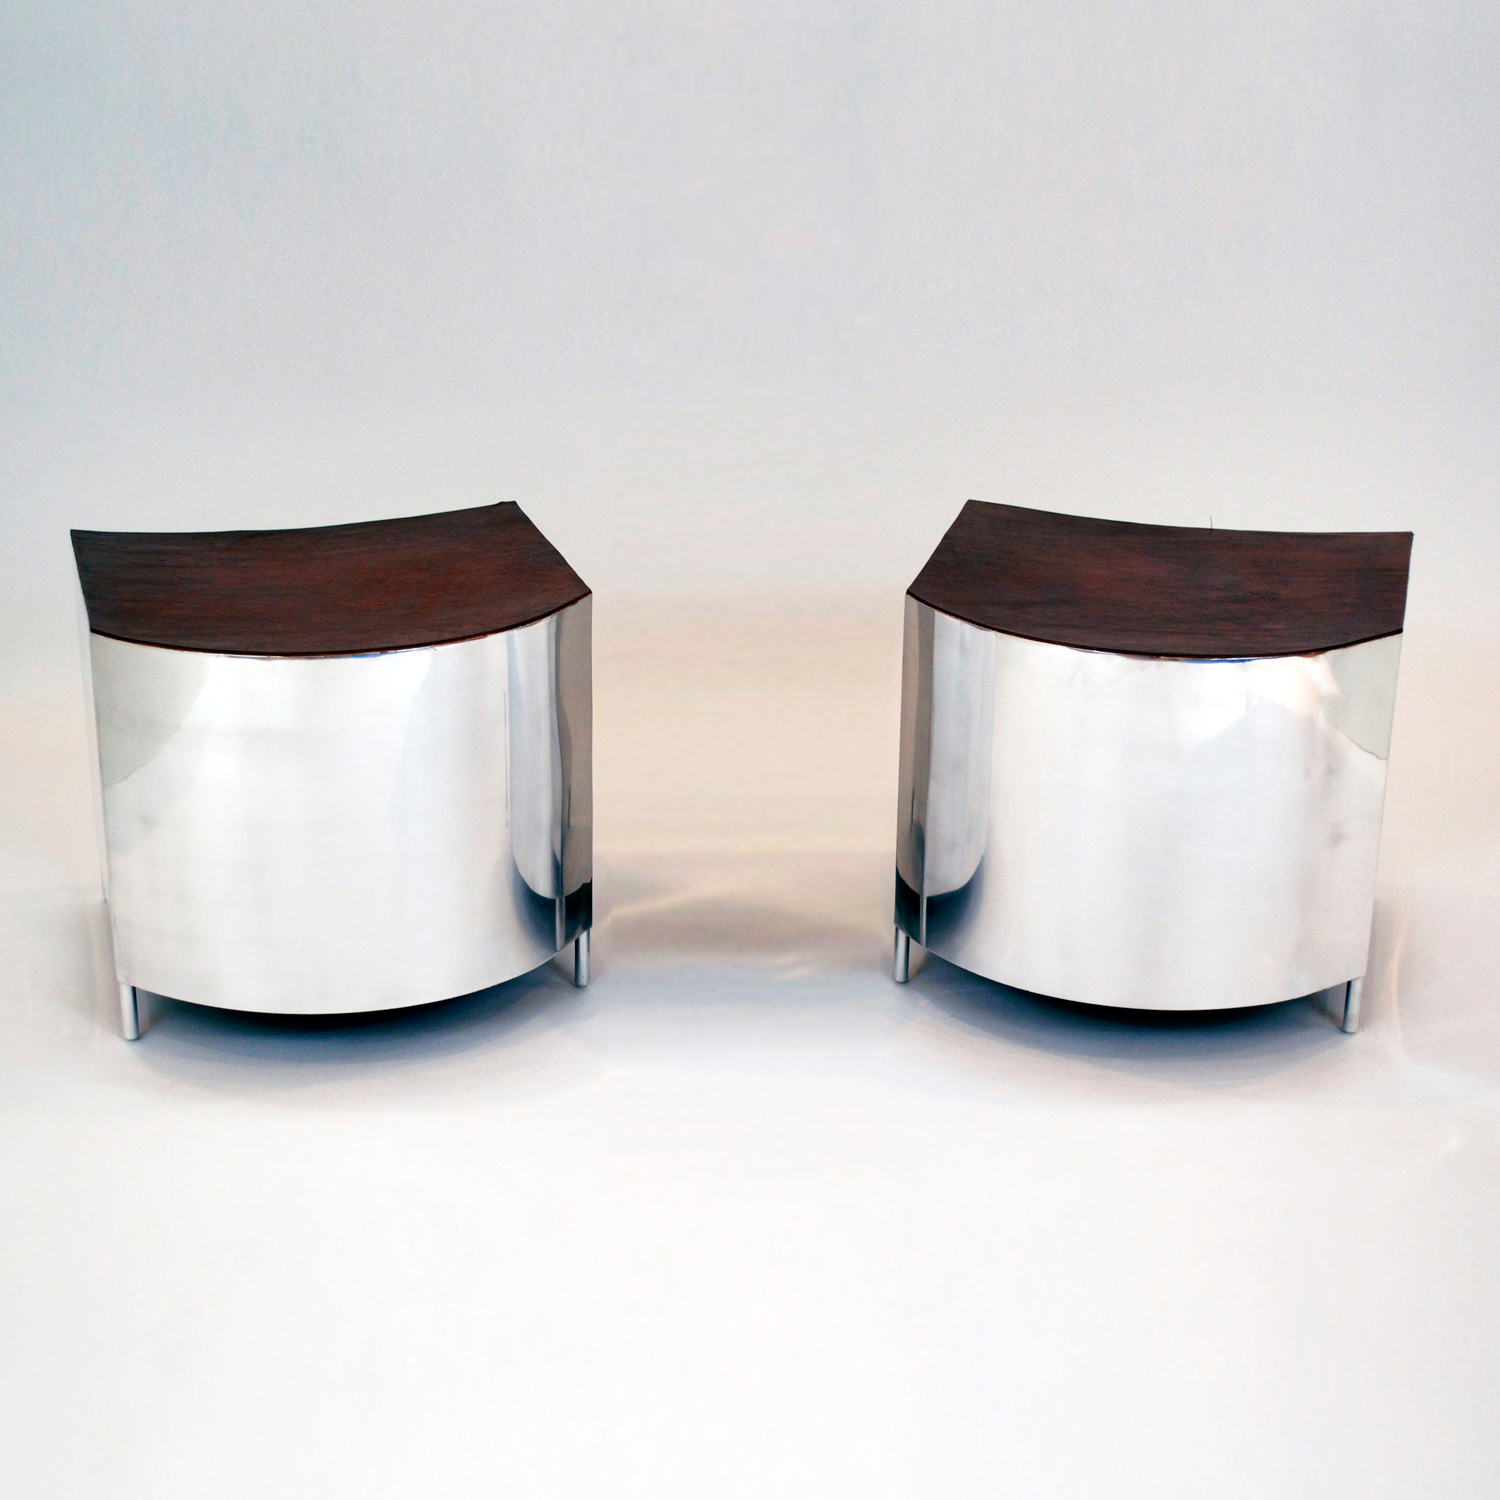 Stool by Gentner